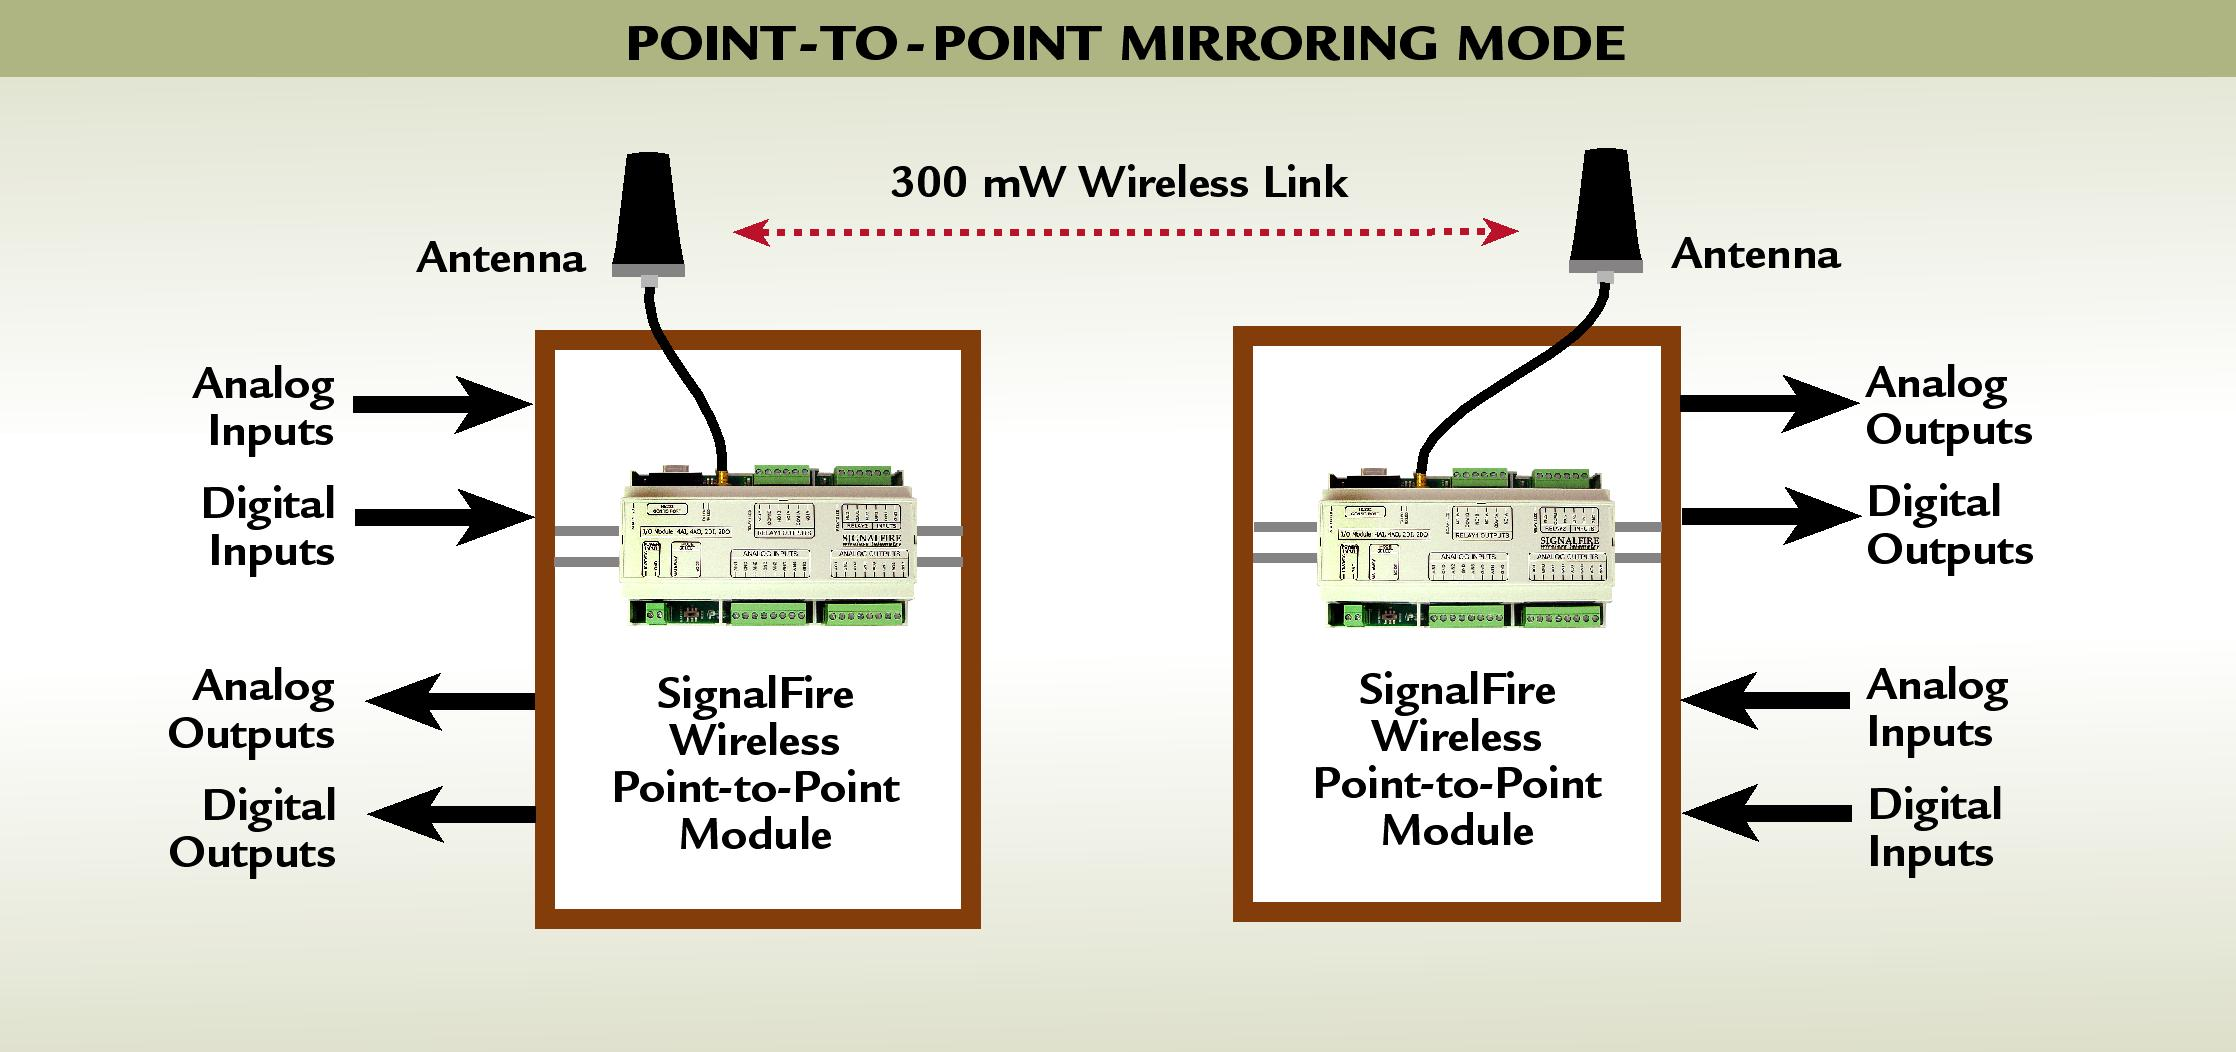 Wireless io module mirrors signals between 2 points wireless io system diagram ccuart Choice Image